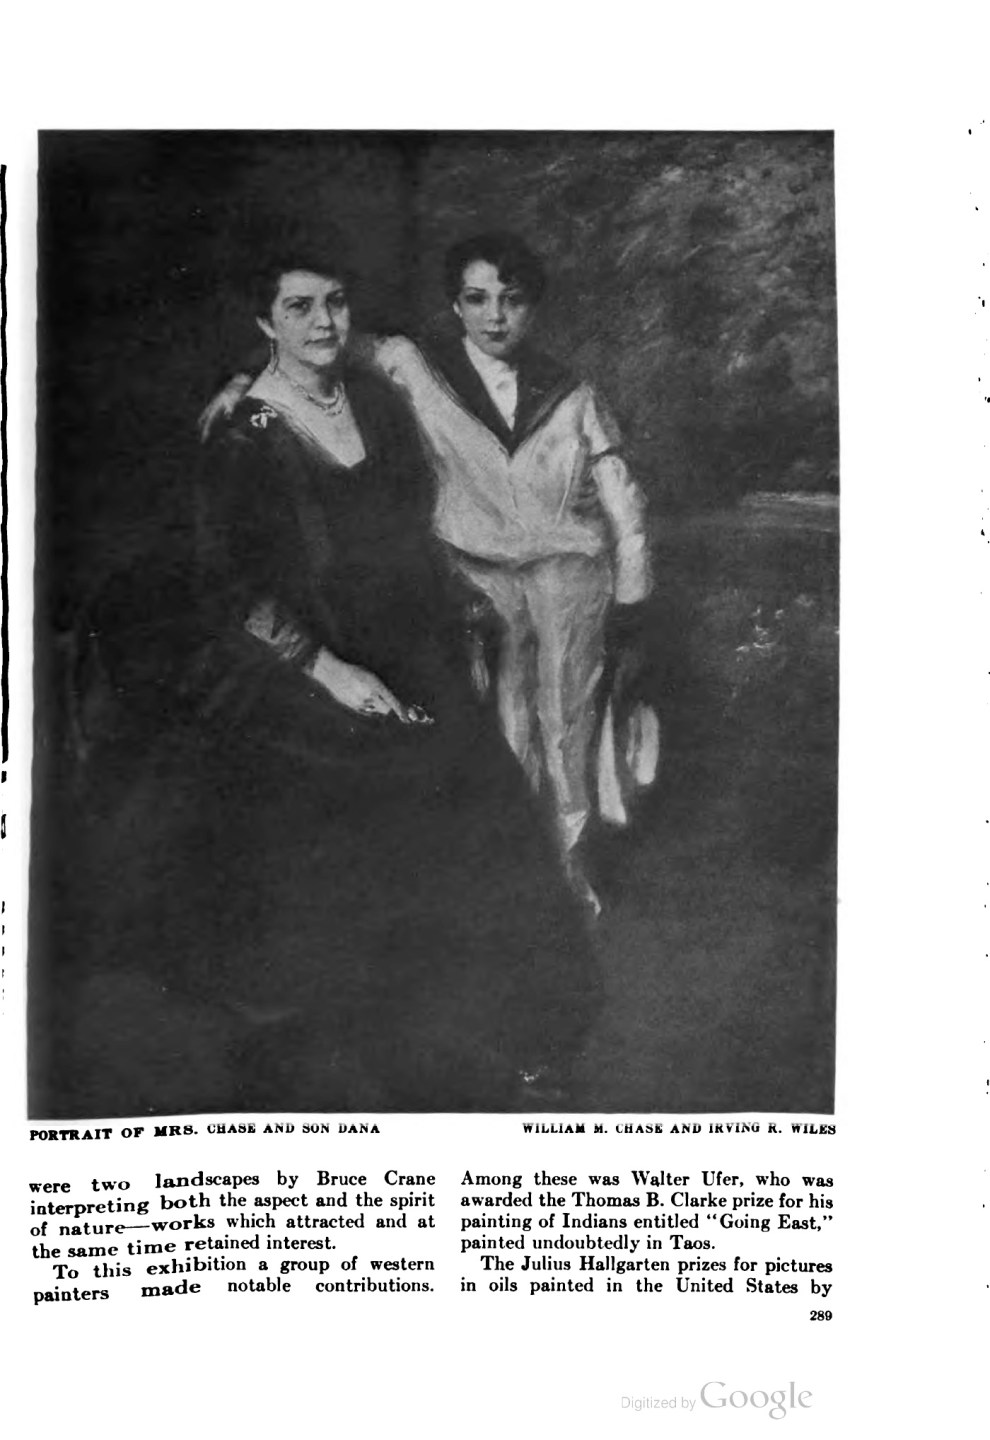 "The American magazine of art [Art and progress], The American Federation of Arts, New York, NY, ""The National Academy's ninety-third annual exhibition"", volume 9, number 7, May, 1918, page 288-291, not illustrated."